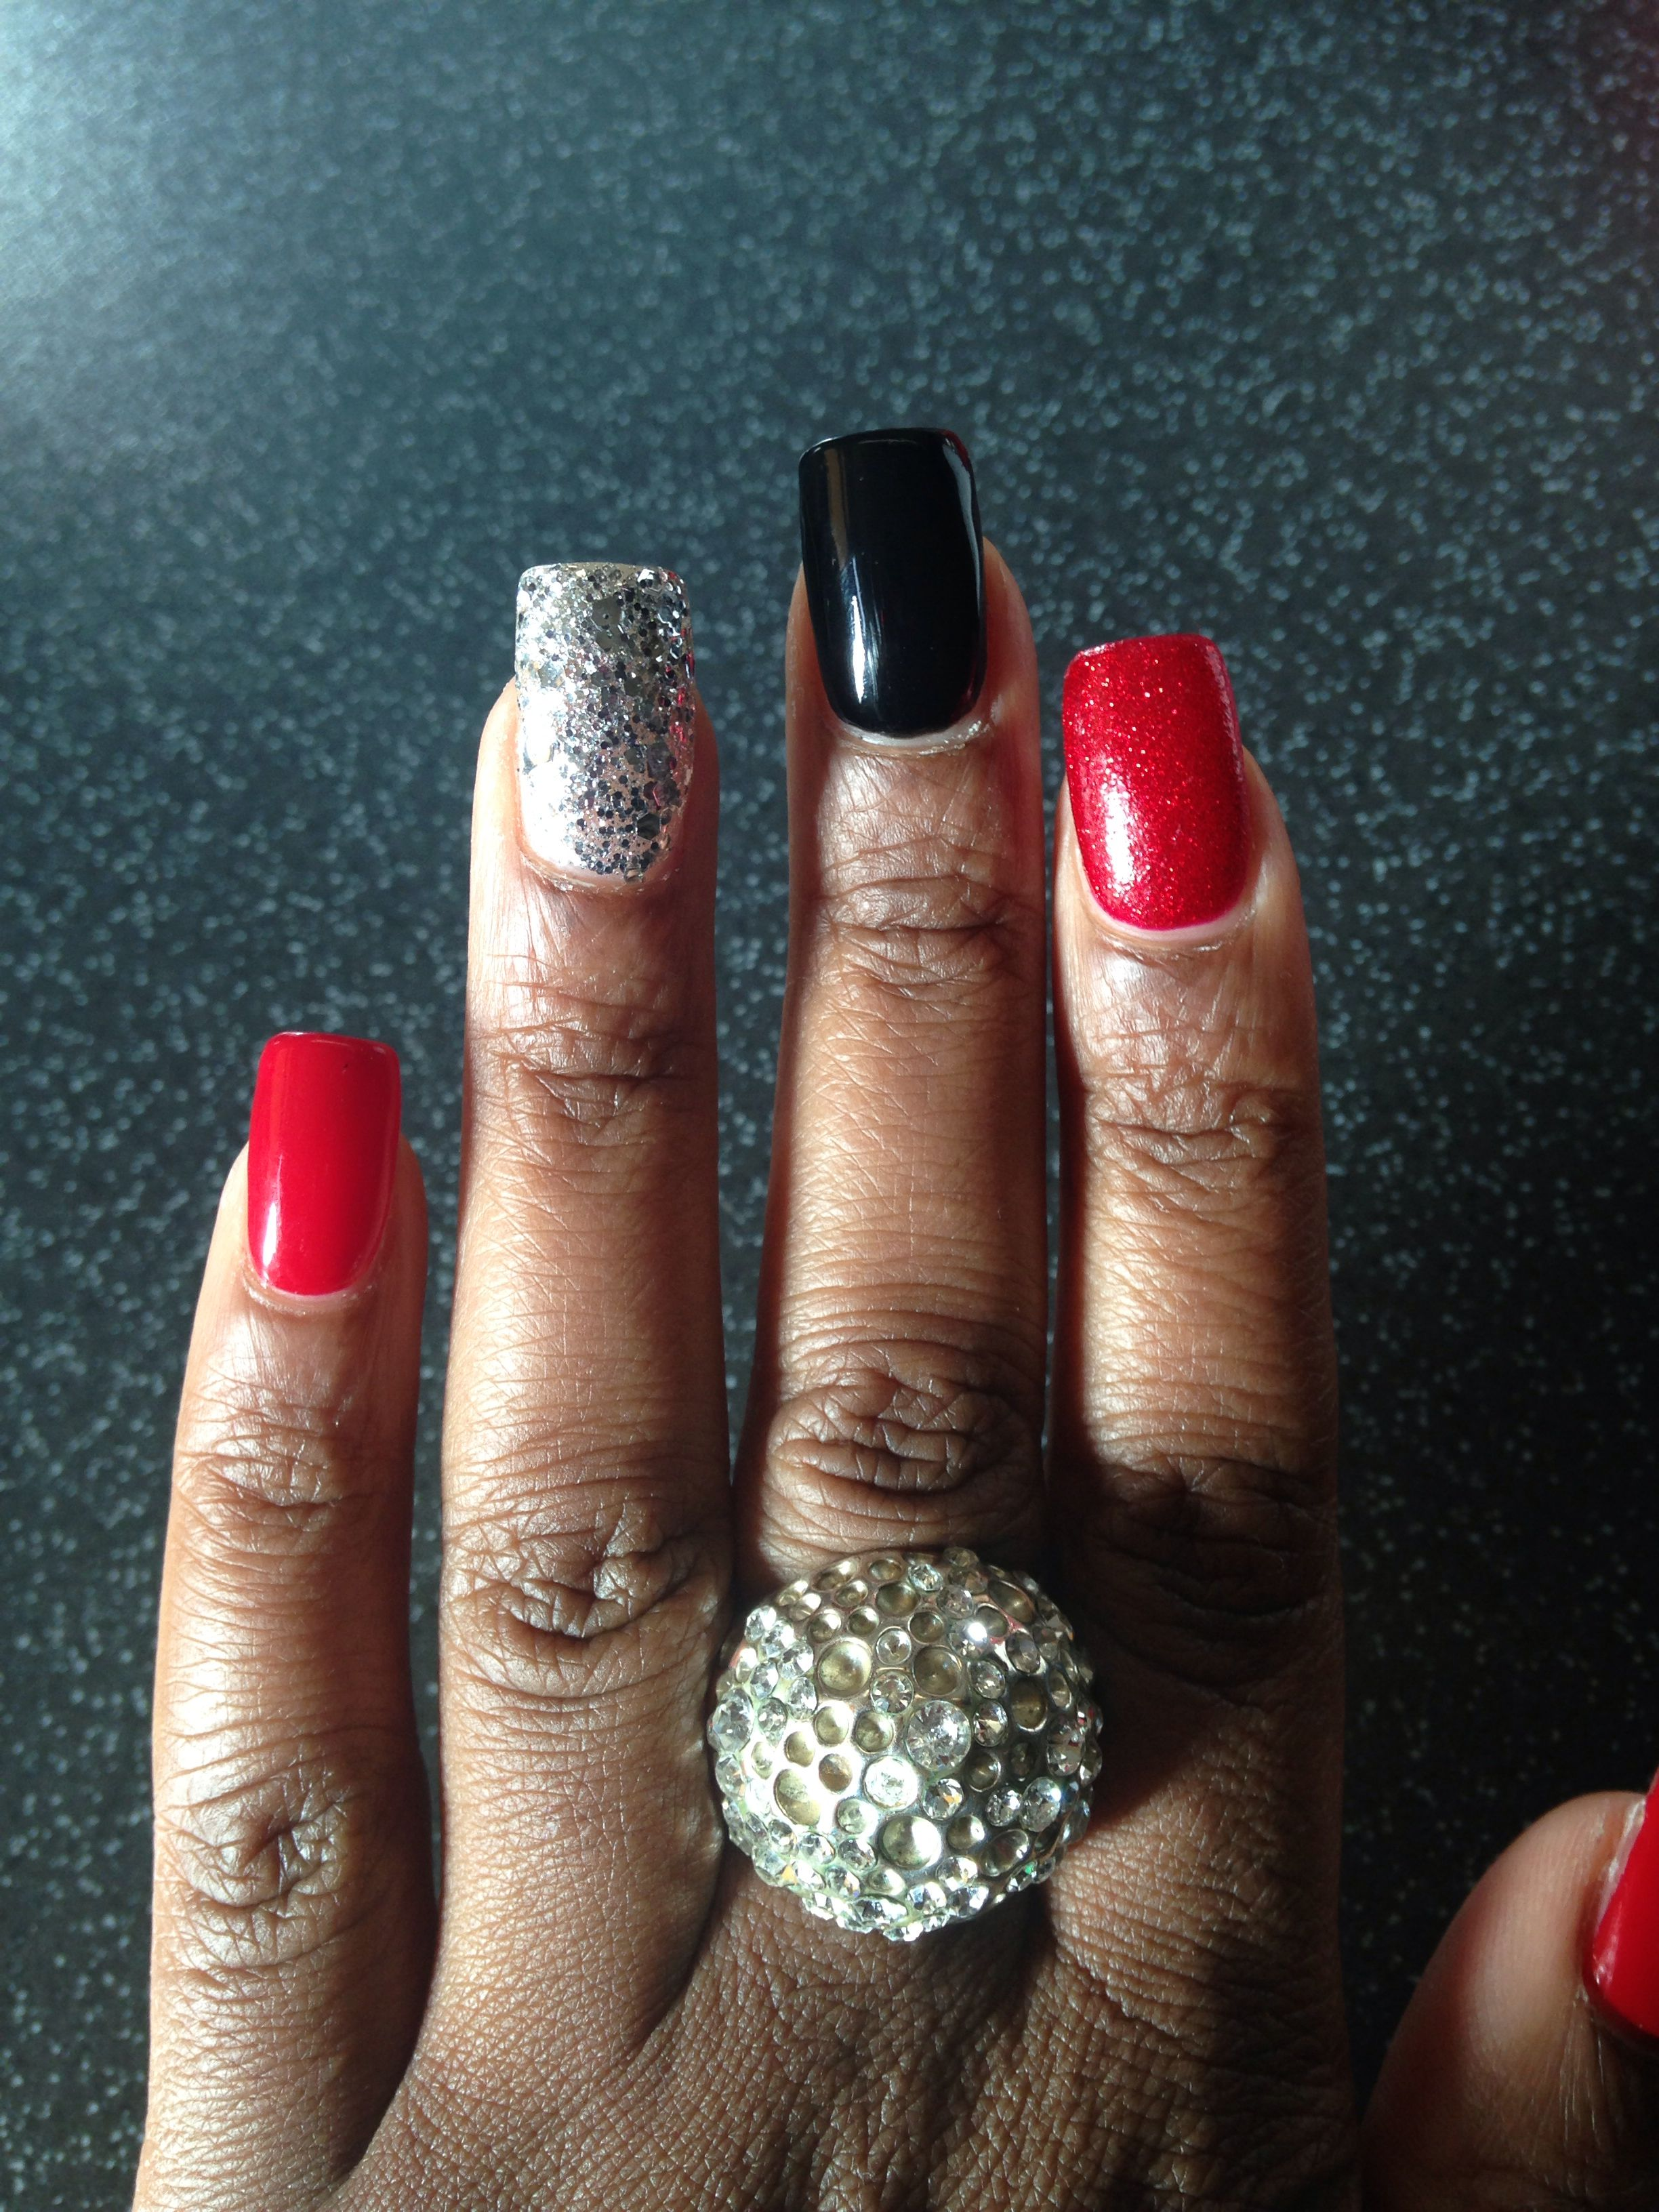 Pin By Allie Lambing On Nails Red And Silver Nails Dance Nails Red Nails